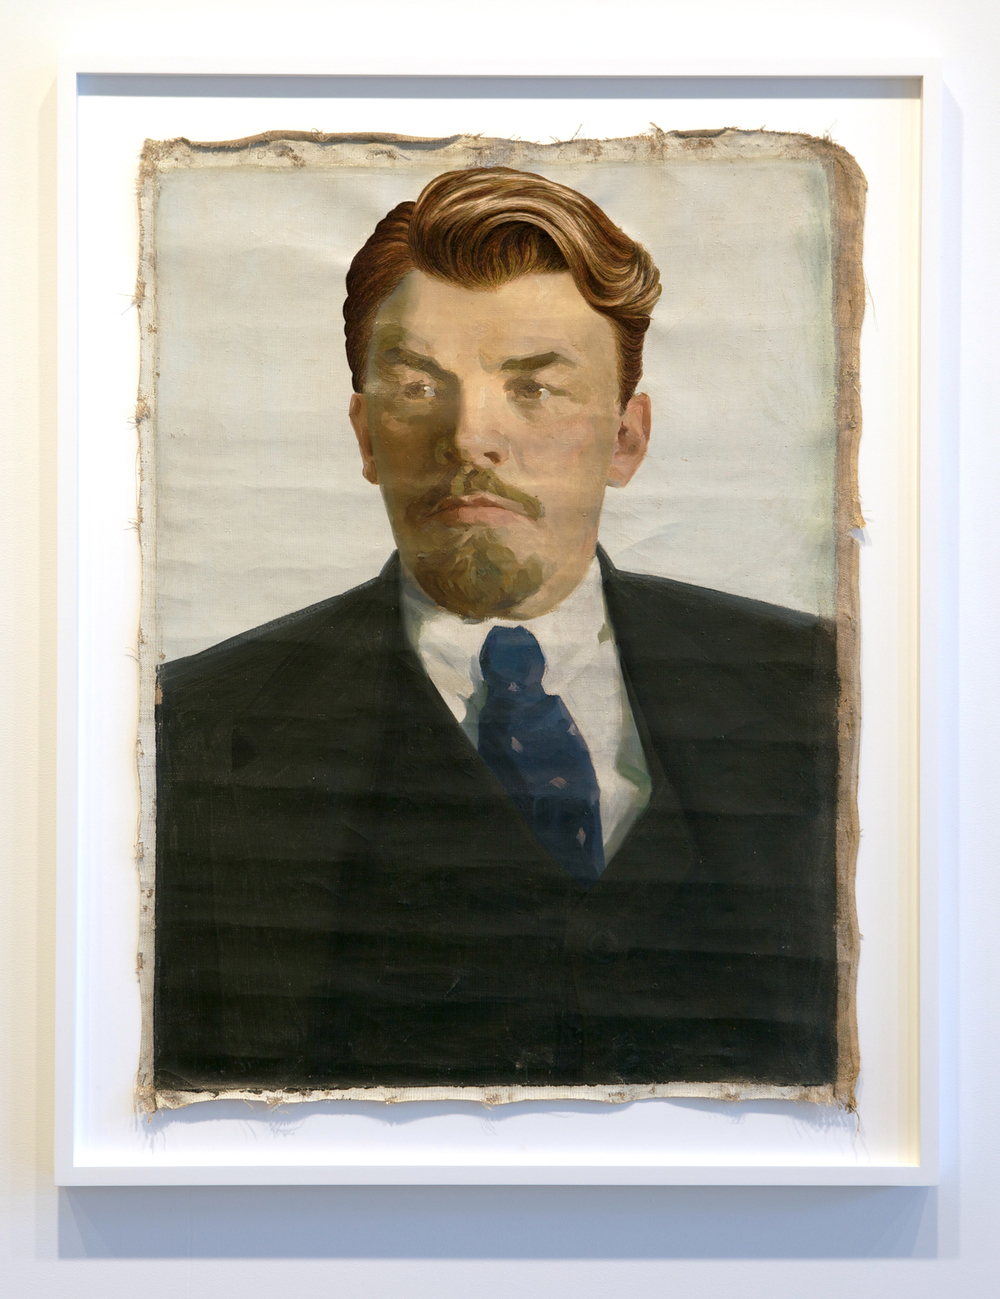 The Propeller Group   Lenin as Jay Gatsby in The Great Gatsby  , 2013   oil and embroidery on canvas   44 x 33.75 inches   111.8 x 85.7 cm